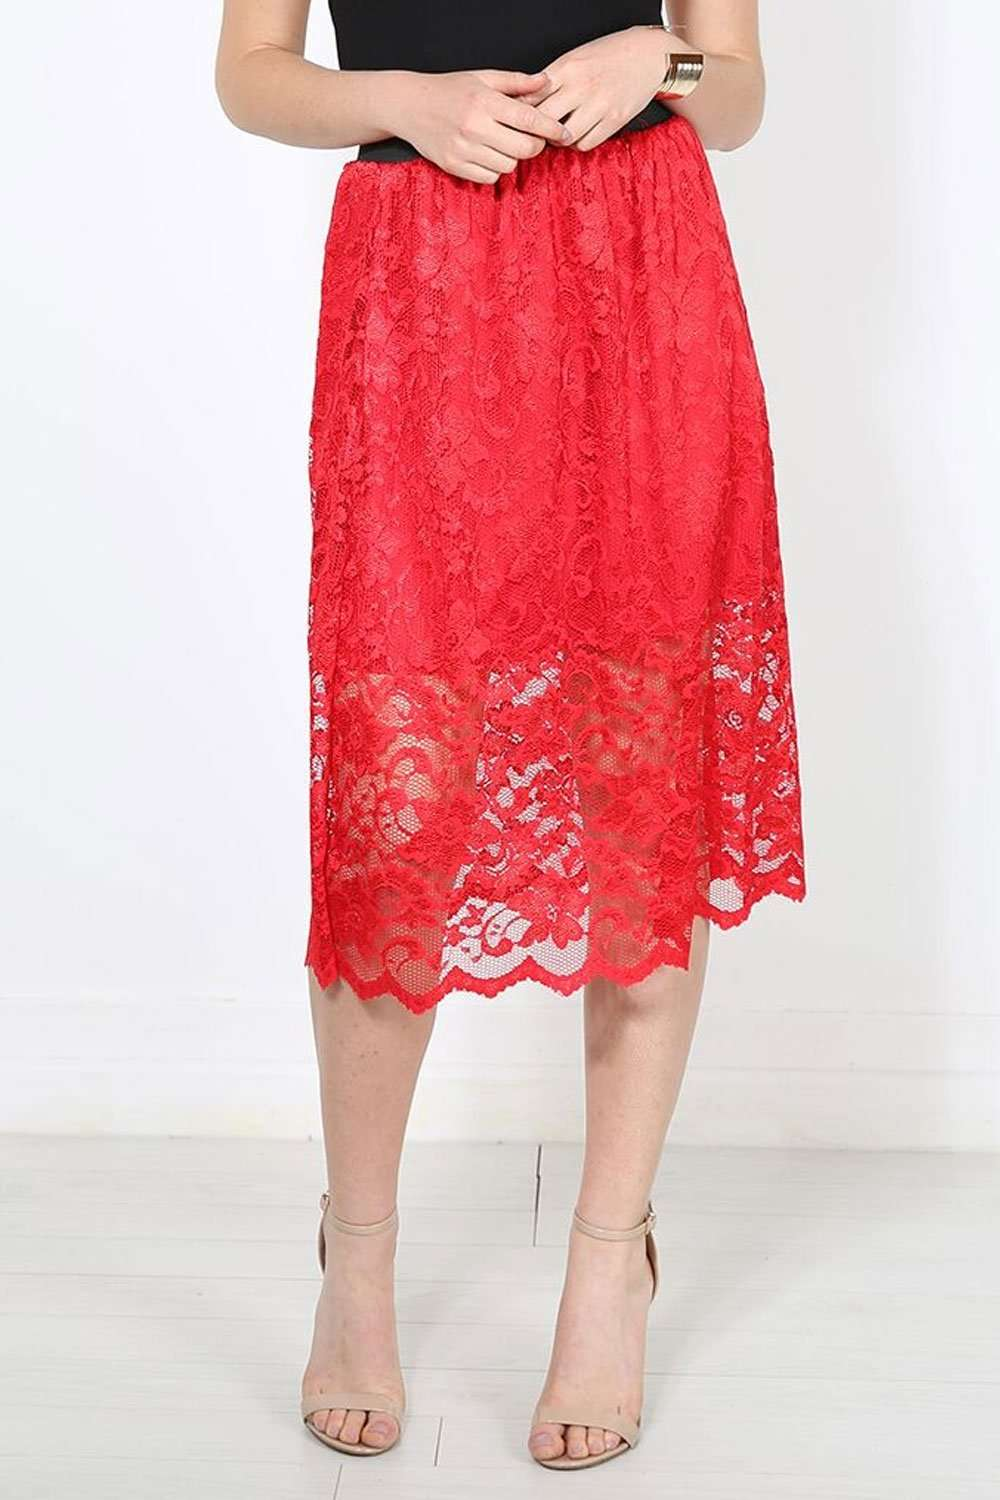 Allizia High Waisted Red Floral Lace Midi Skirt - bejealous-com